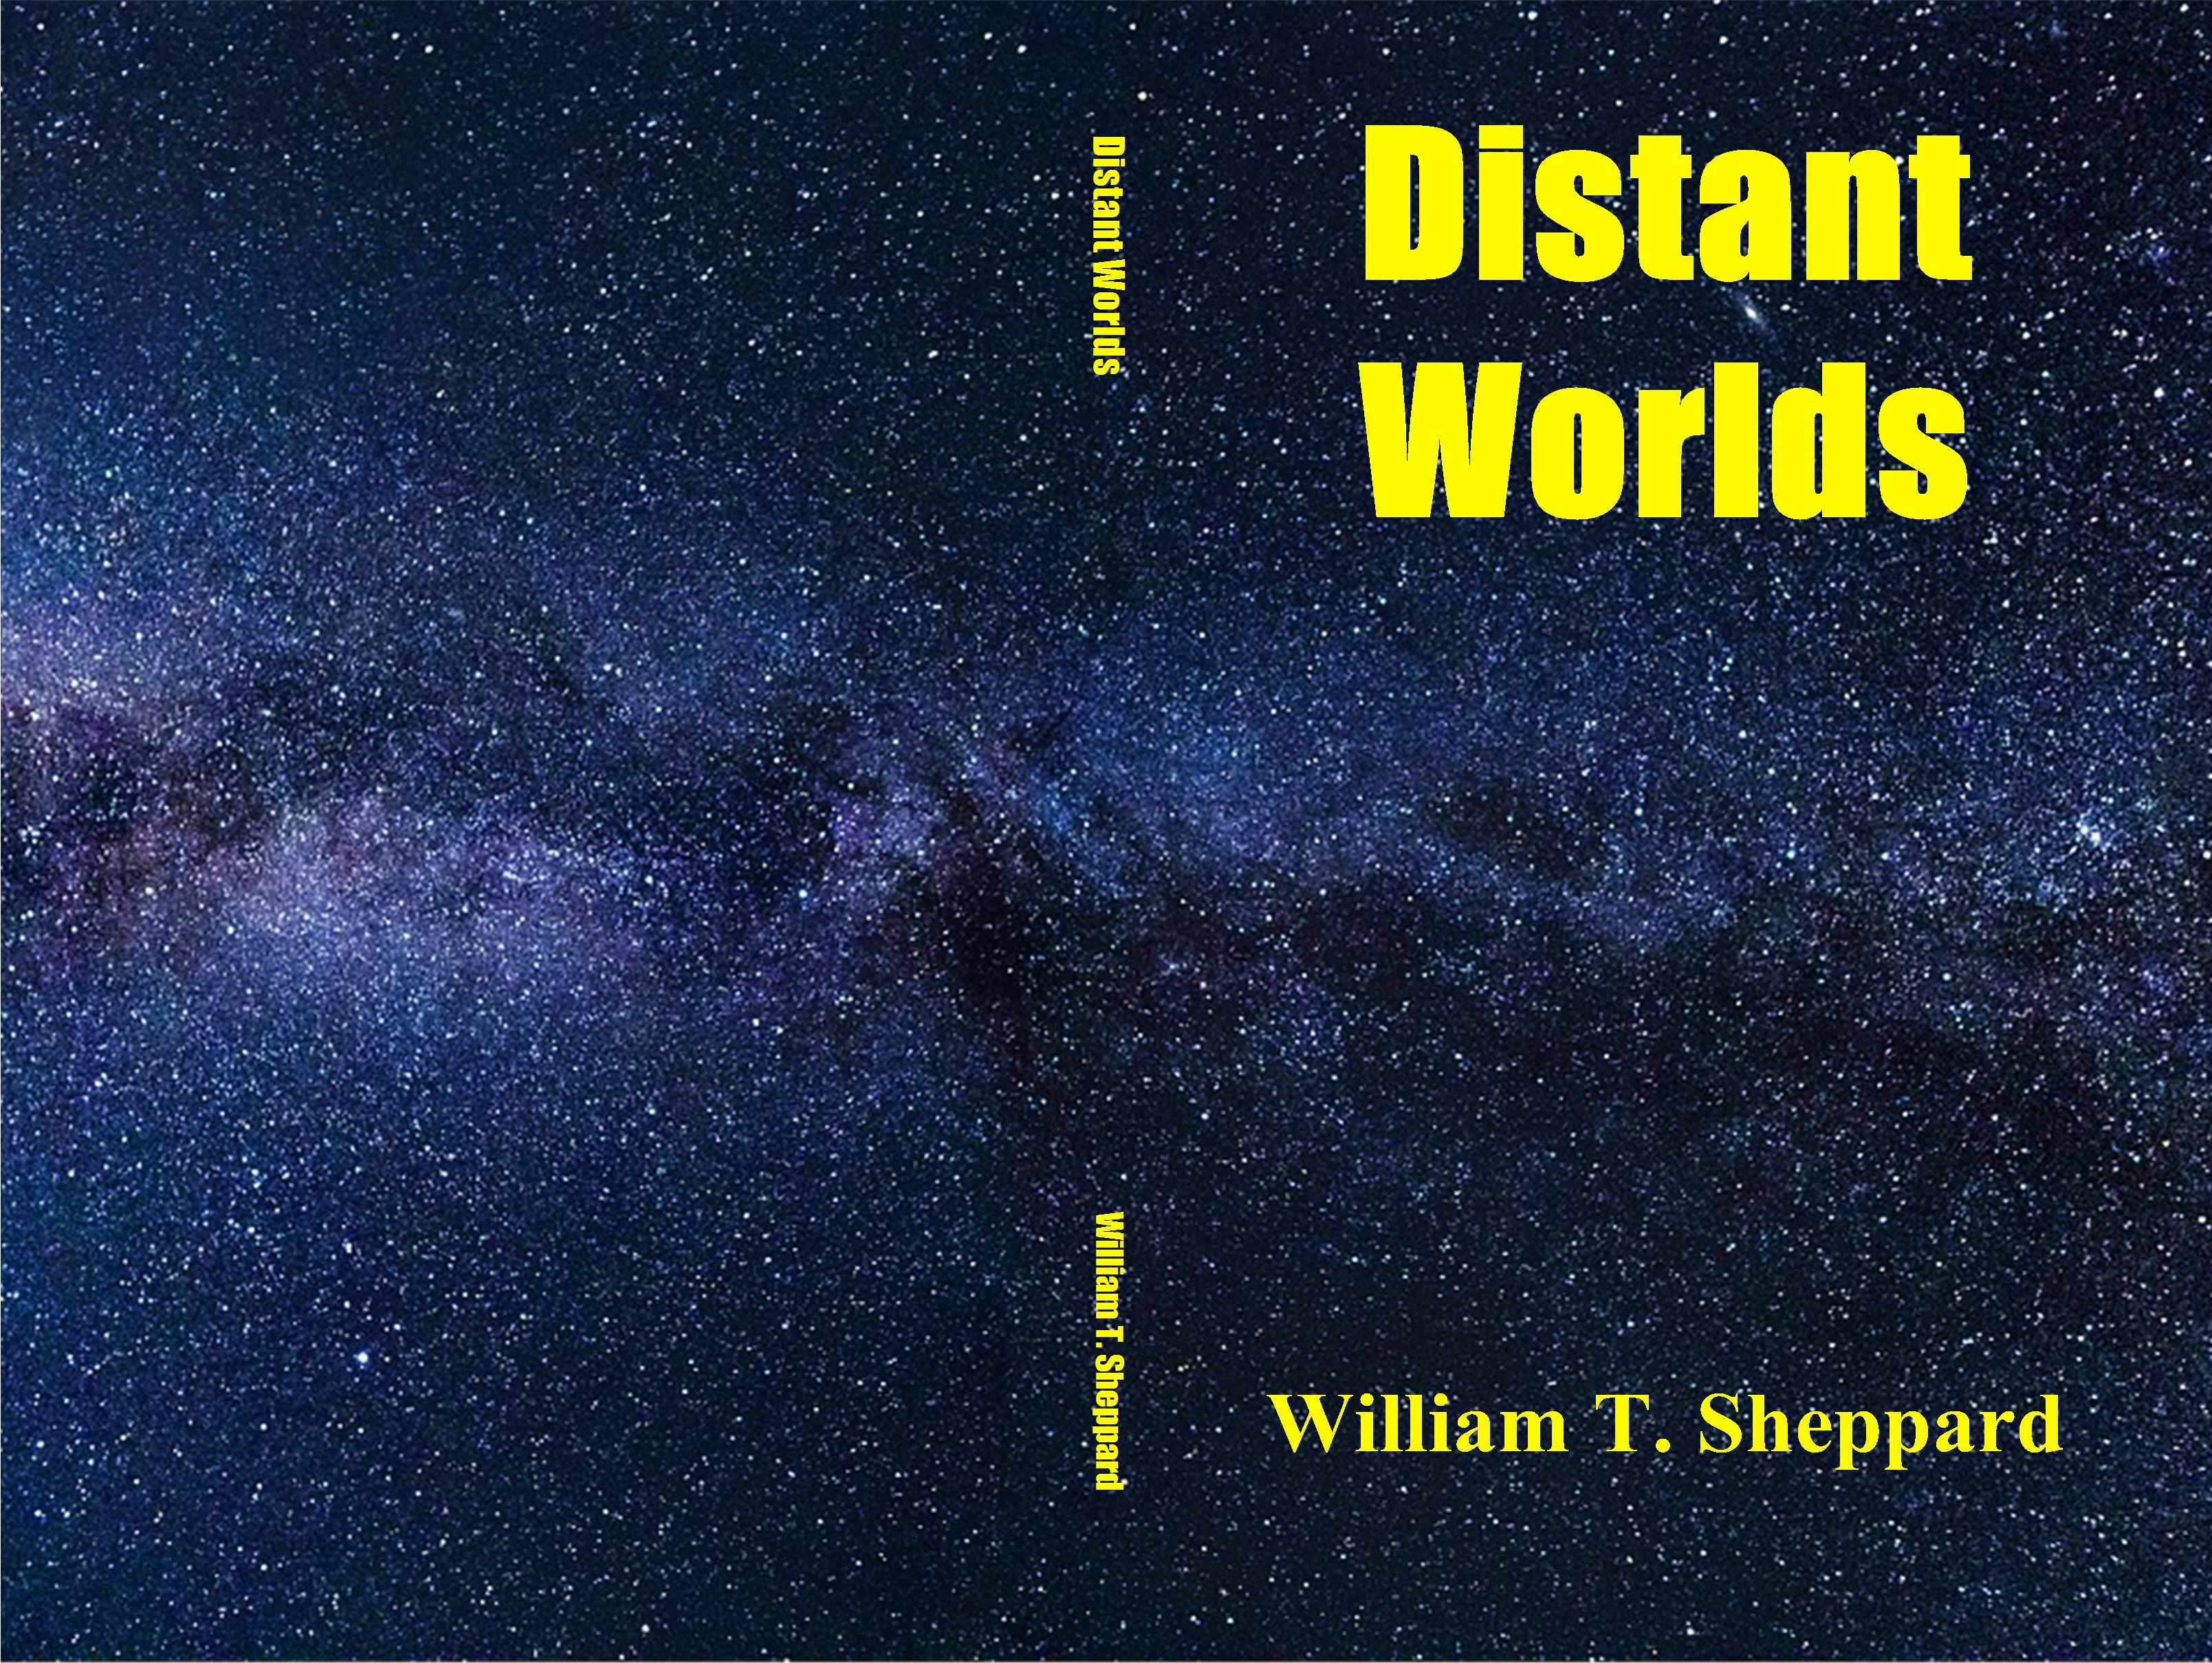 Distant Worlds cover image